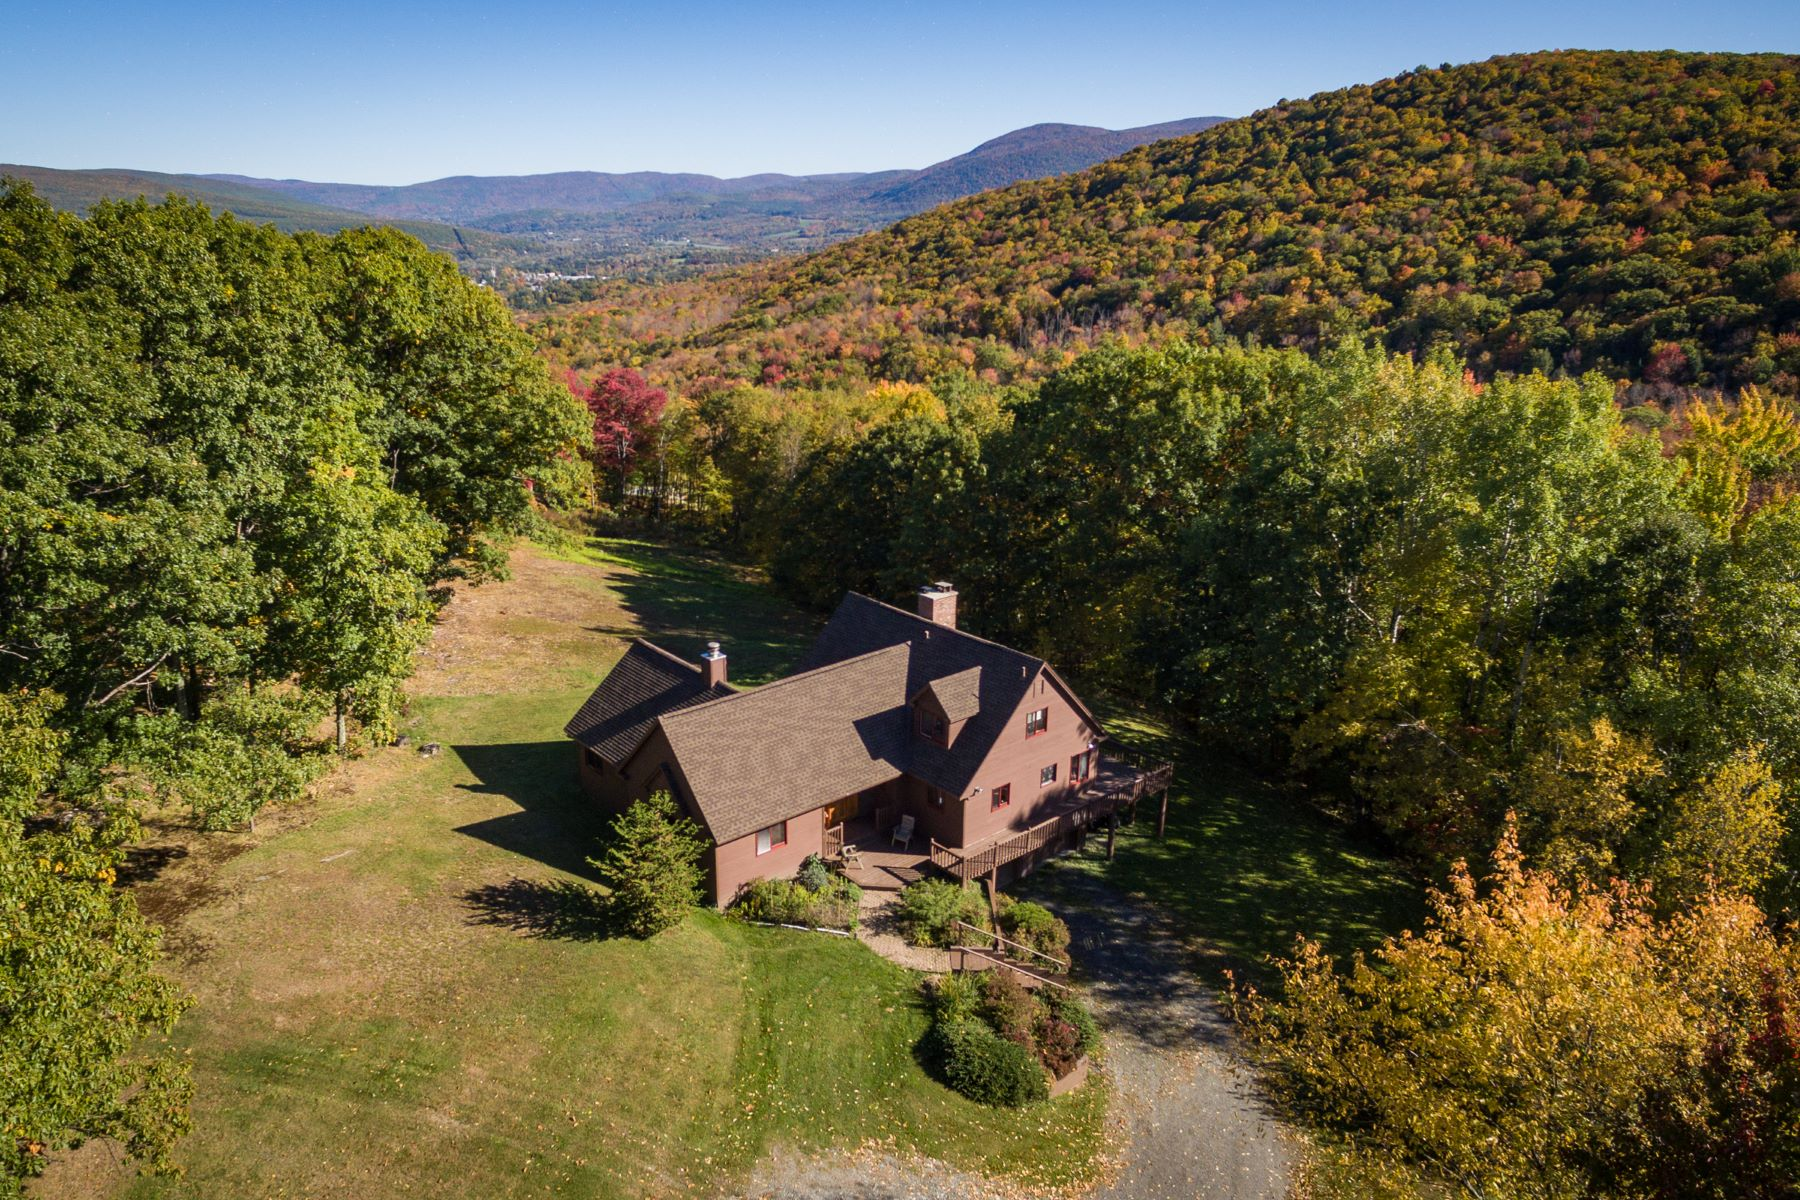 Casa Unifamiliar por un Venta en Spectacular 200-Acre Parcel with Two Homes, Barn, Views Williamstown, Massachusetts 01267 Estados Unidos